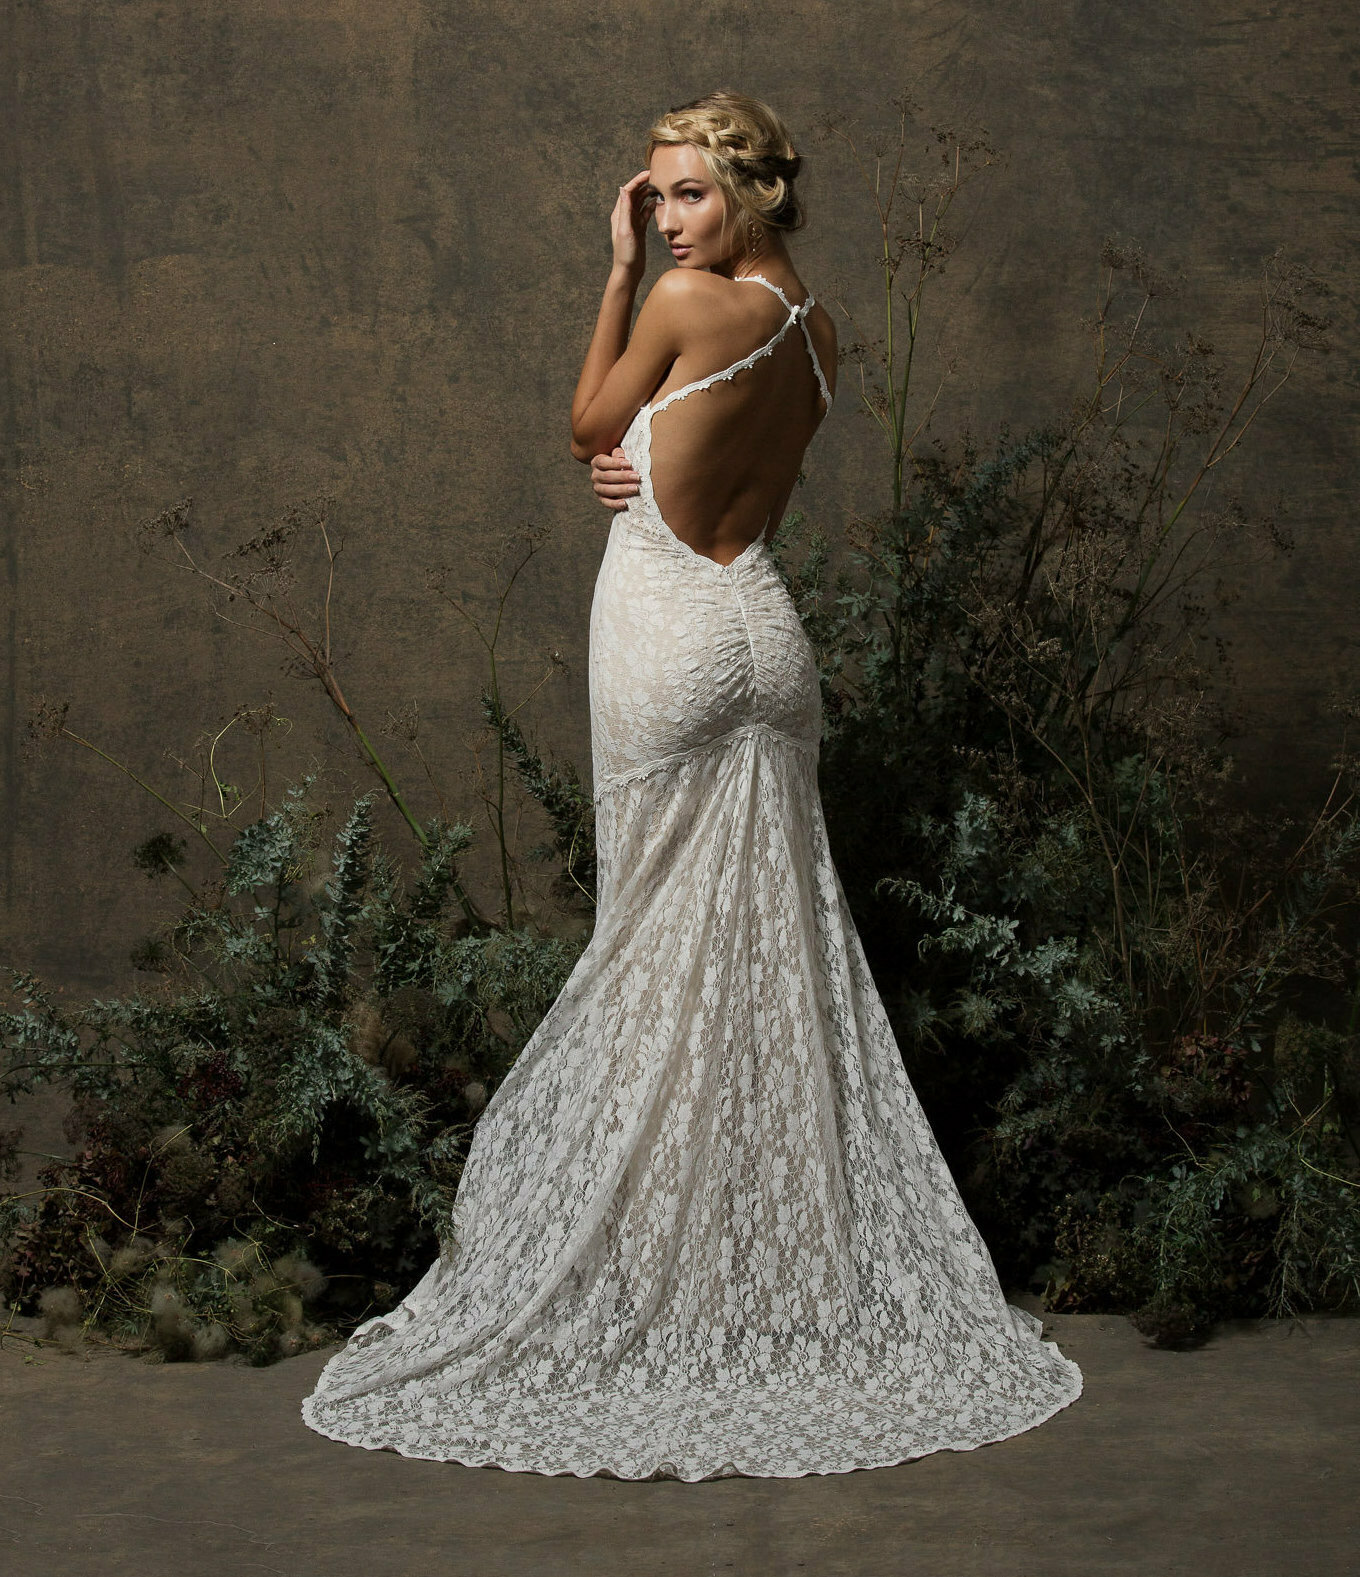 Penelope Backless Lace Wedding Dress | Dreamers and Lovers